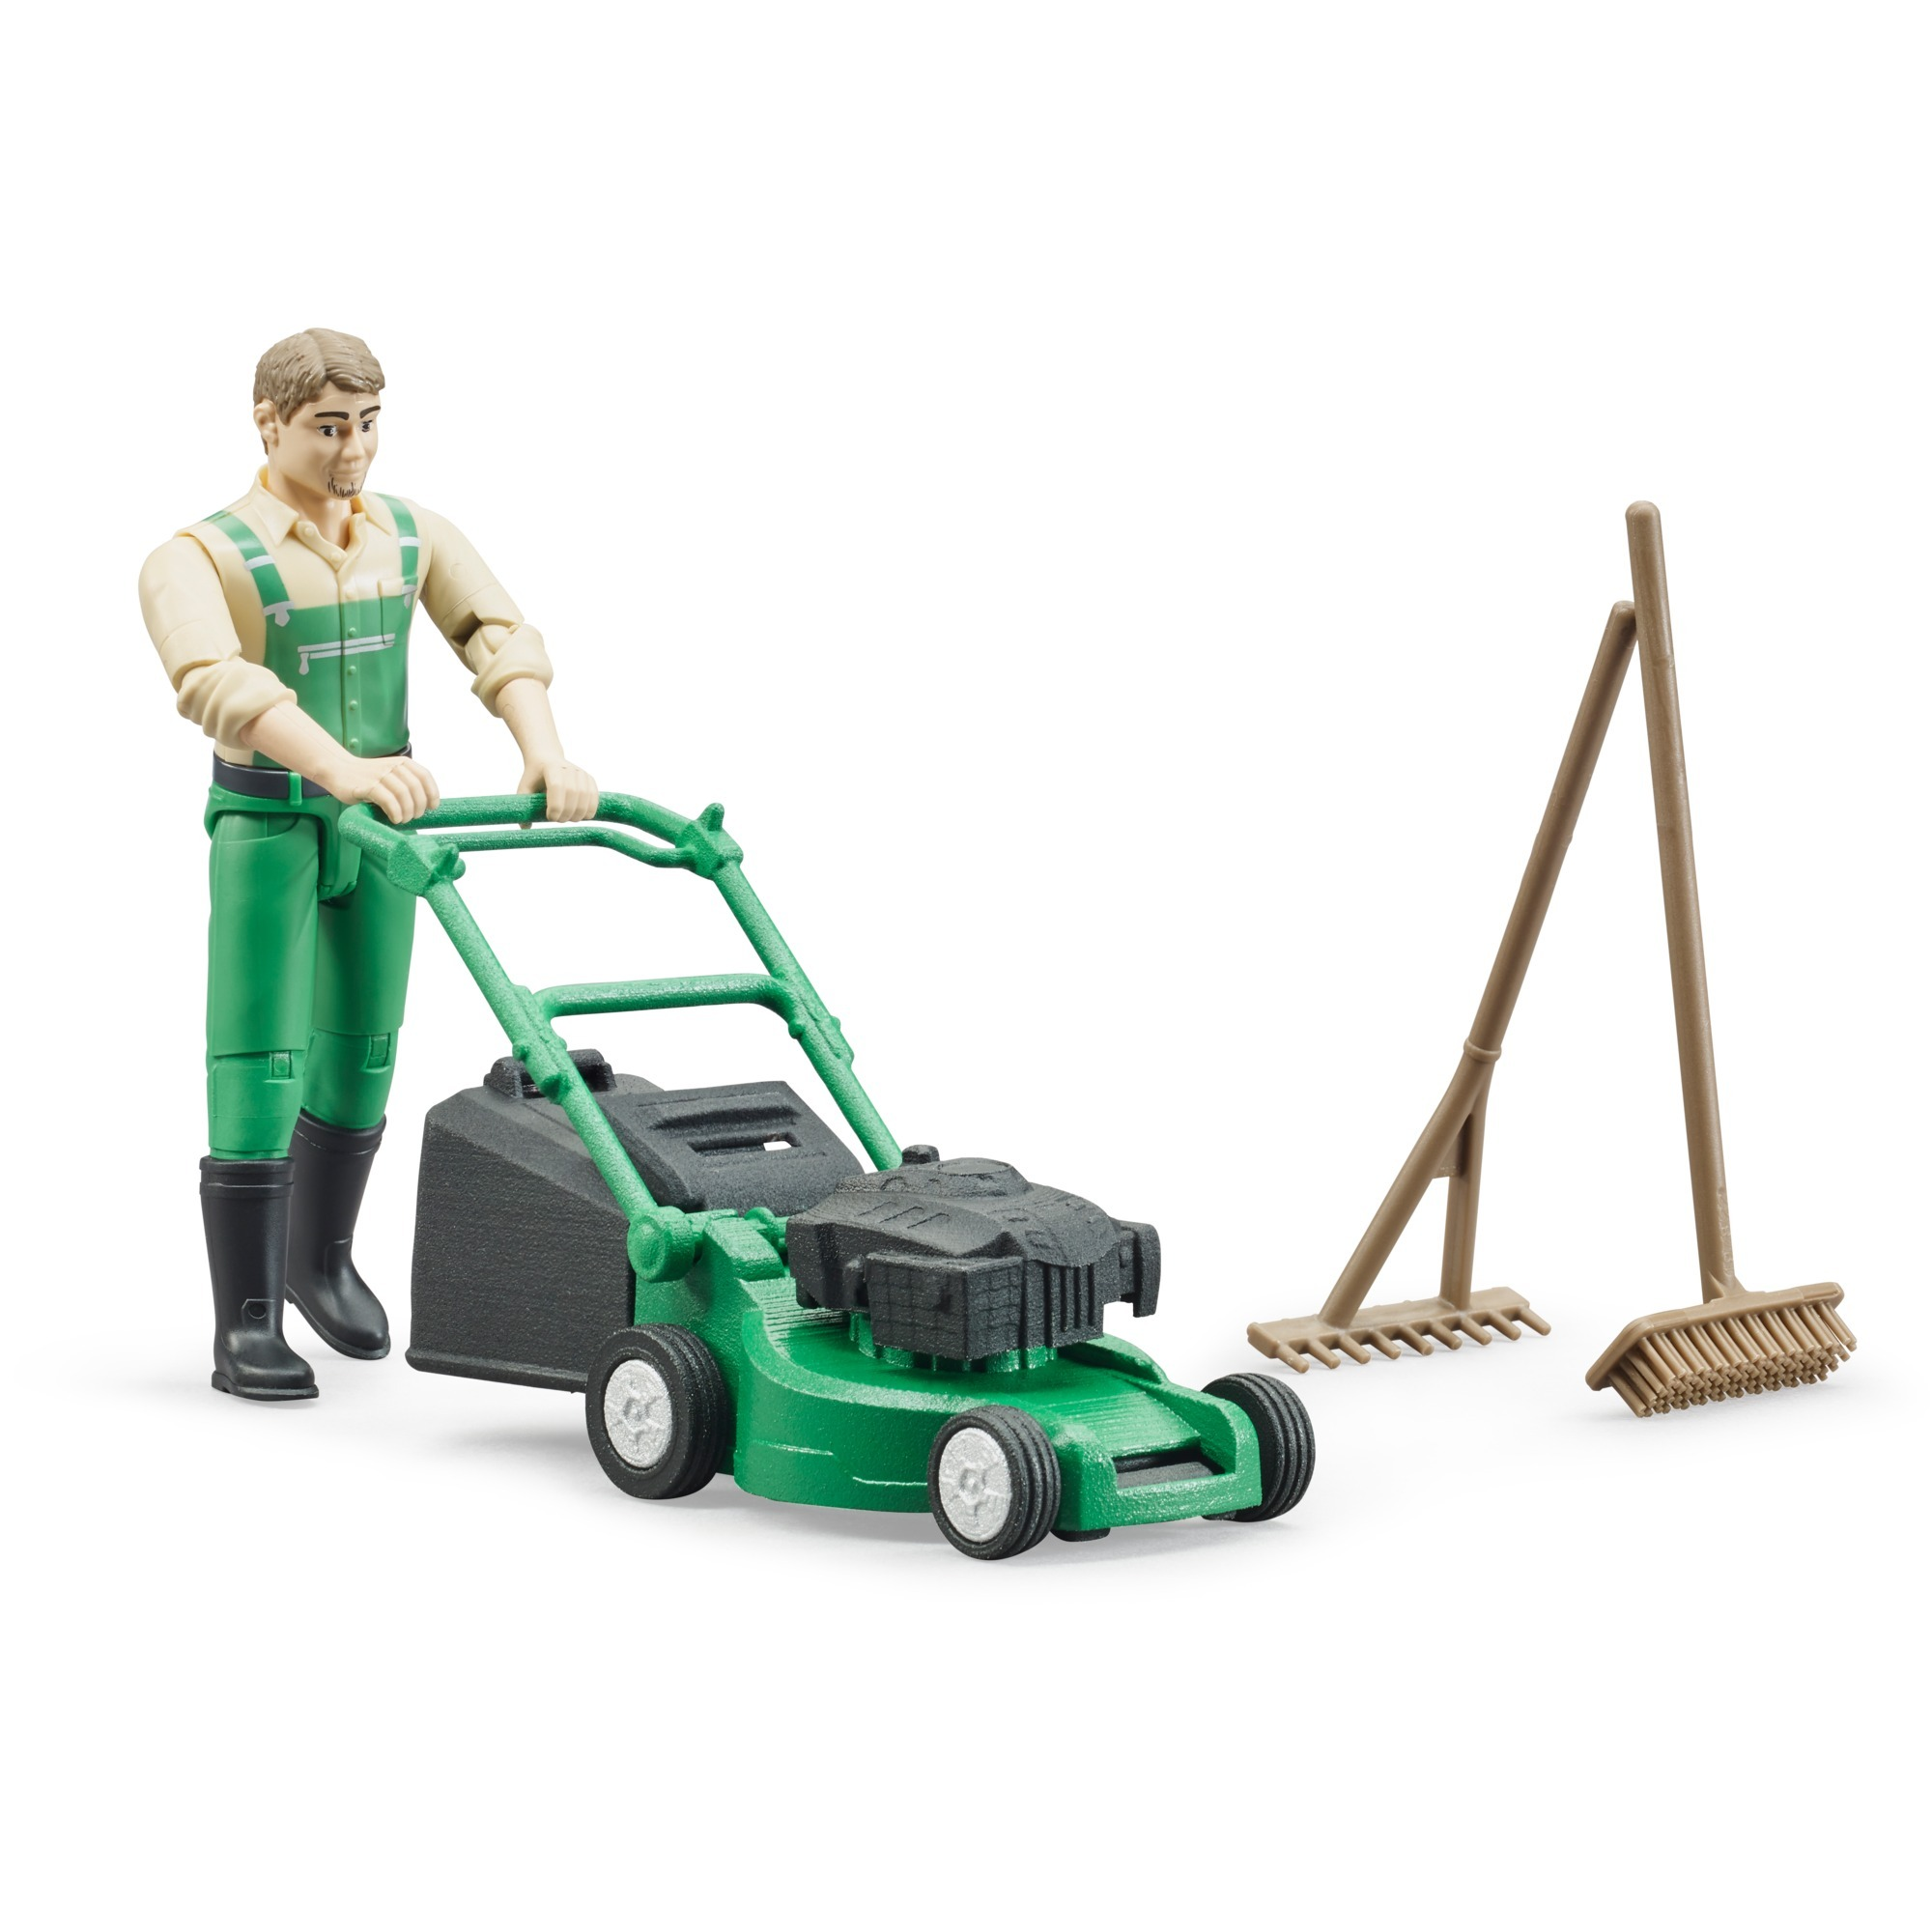 BRUDER #62103 bworld Gardener w/ Mower & Accessories NEW!